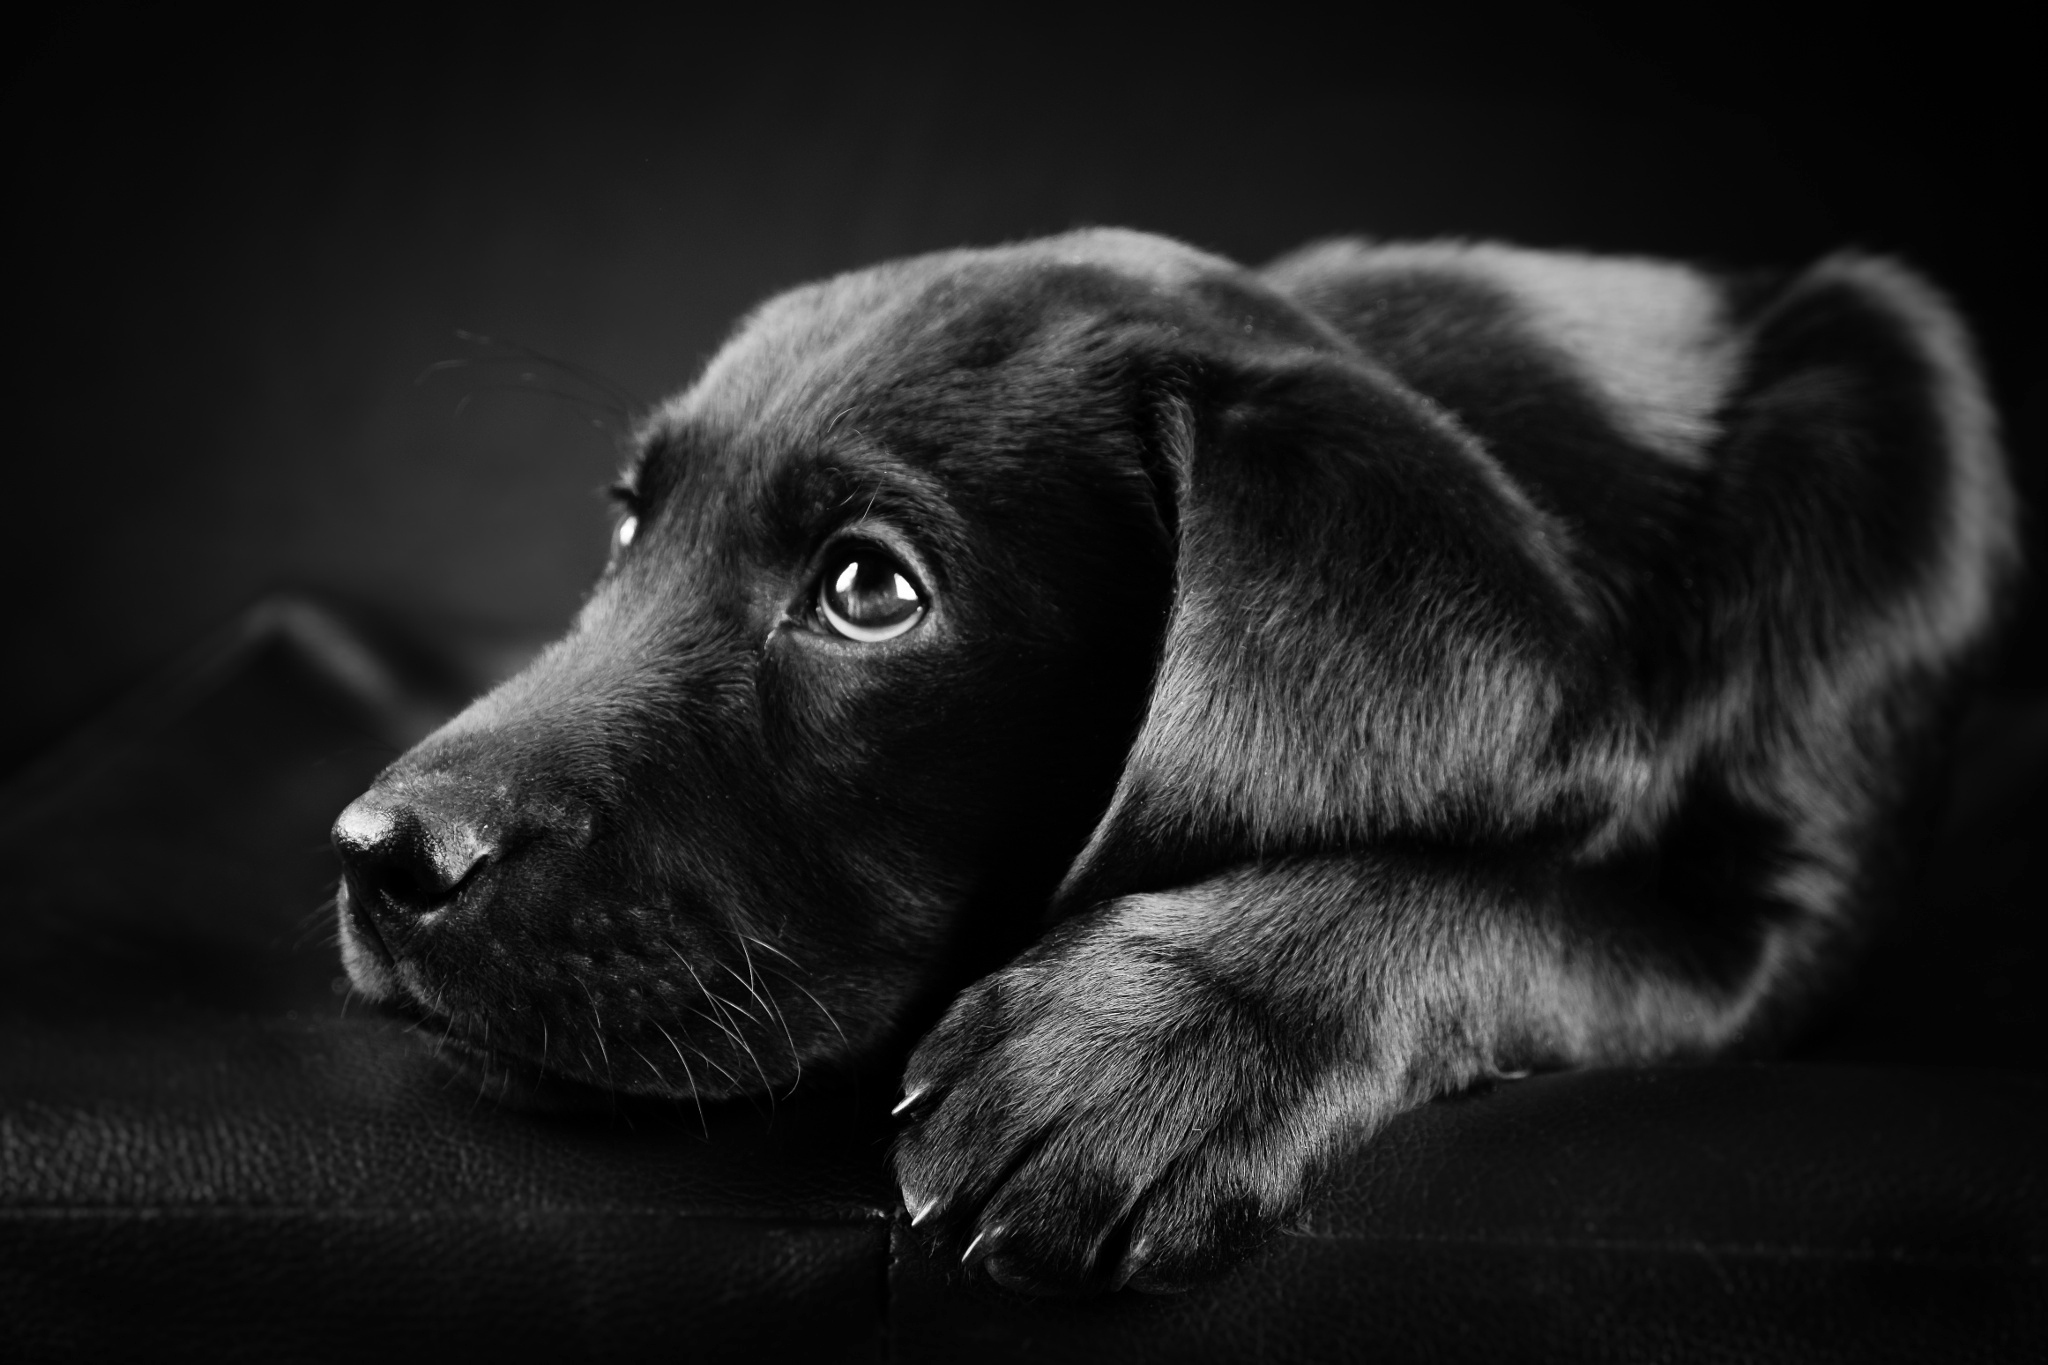 Black And White Dog Wallpapers Iphone - Scerbos com